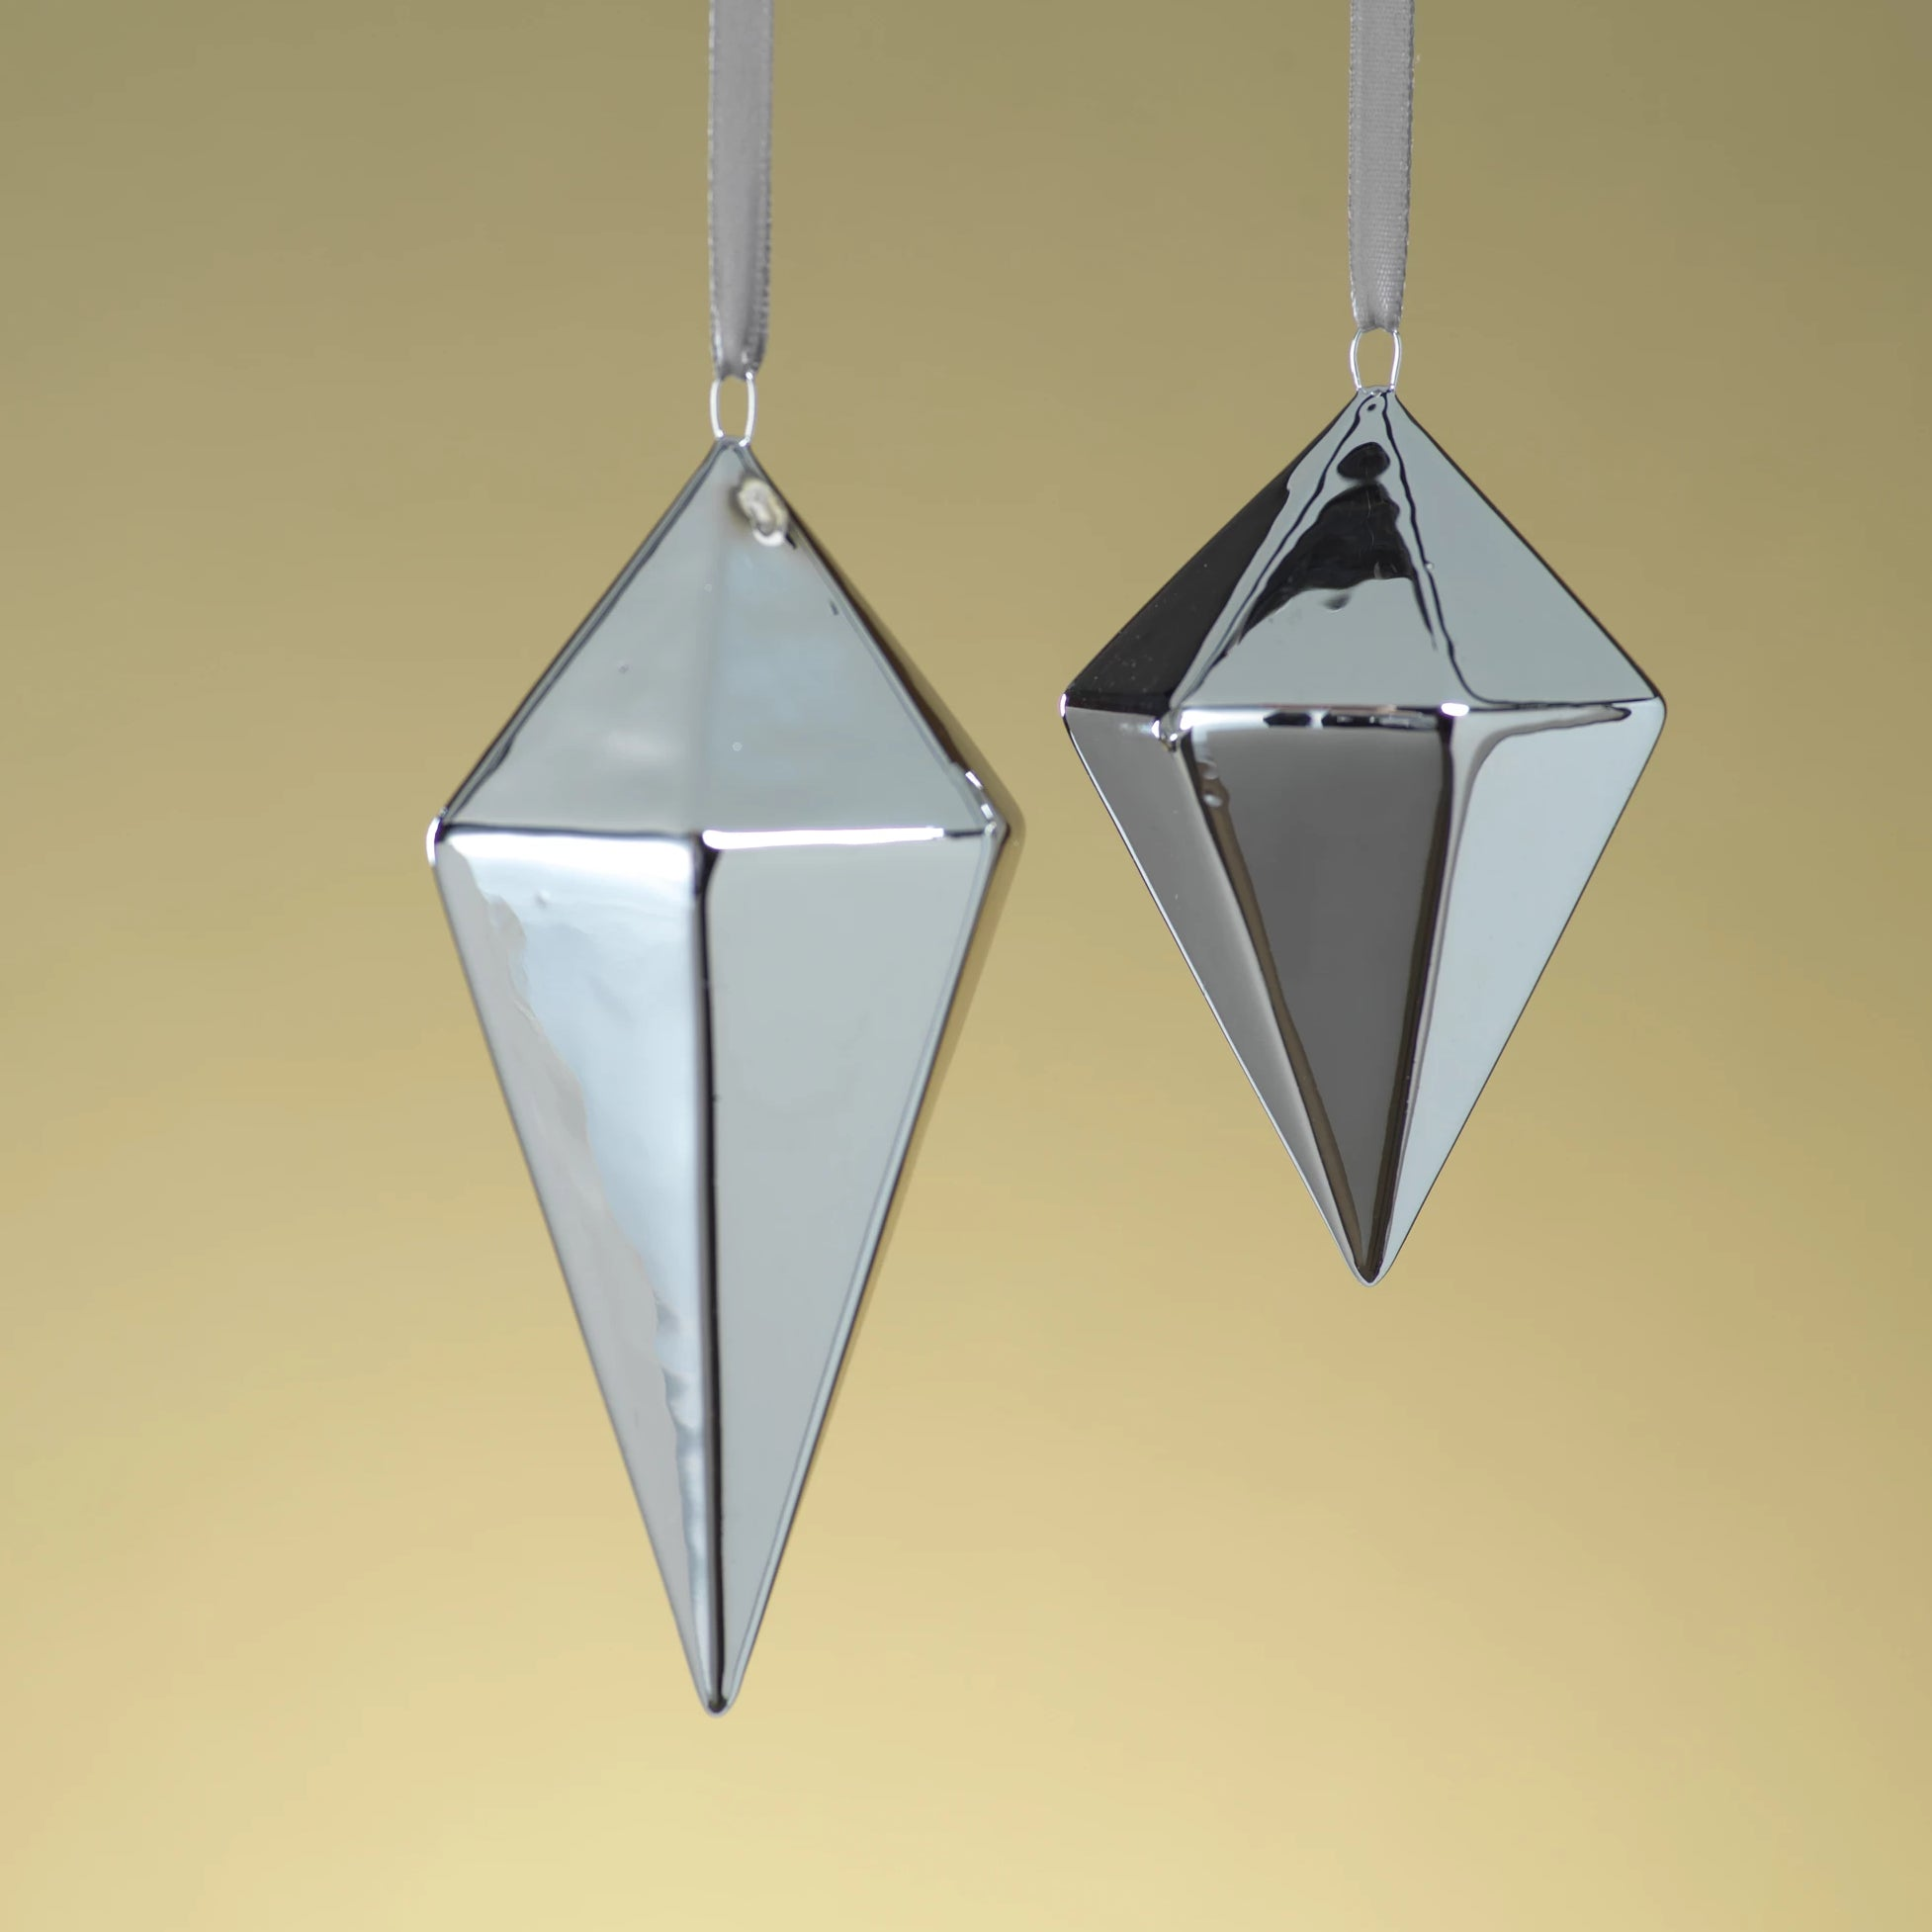 Diamond Ceramic Ornament - Silver - CARLYLE AVENUE